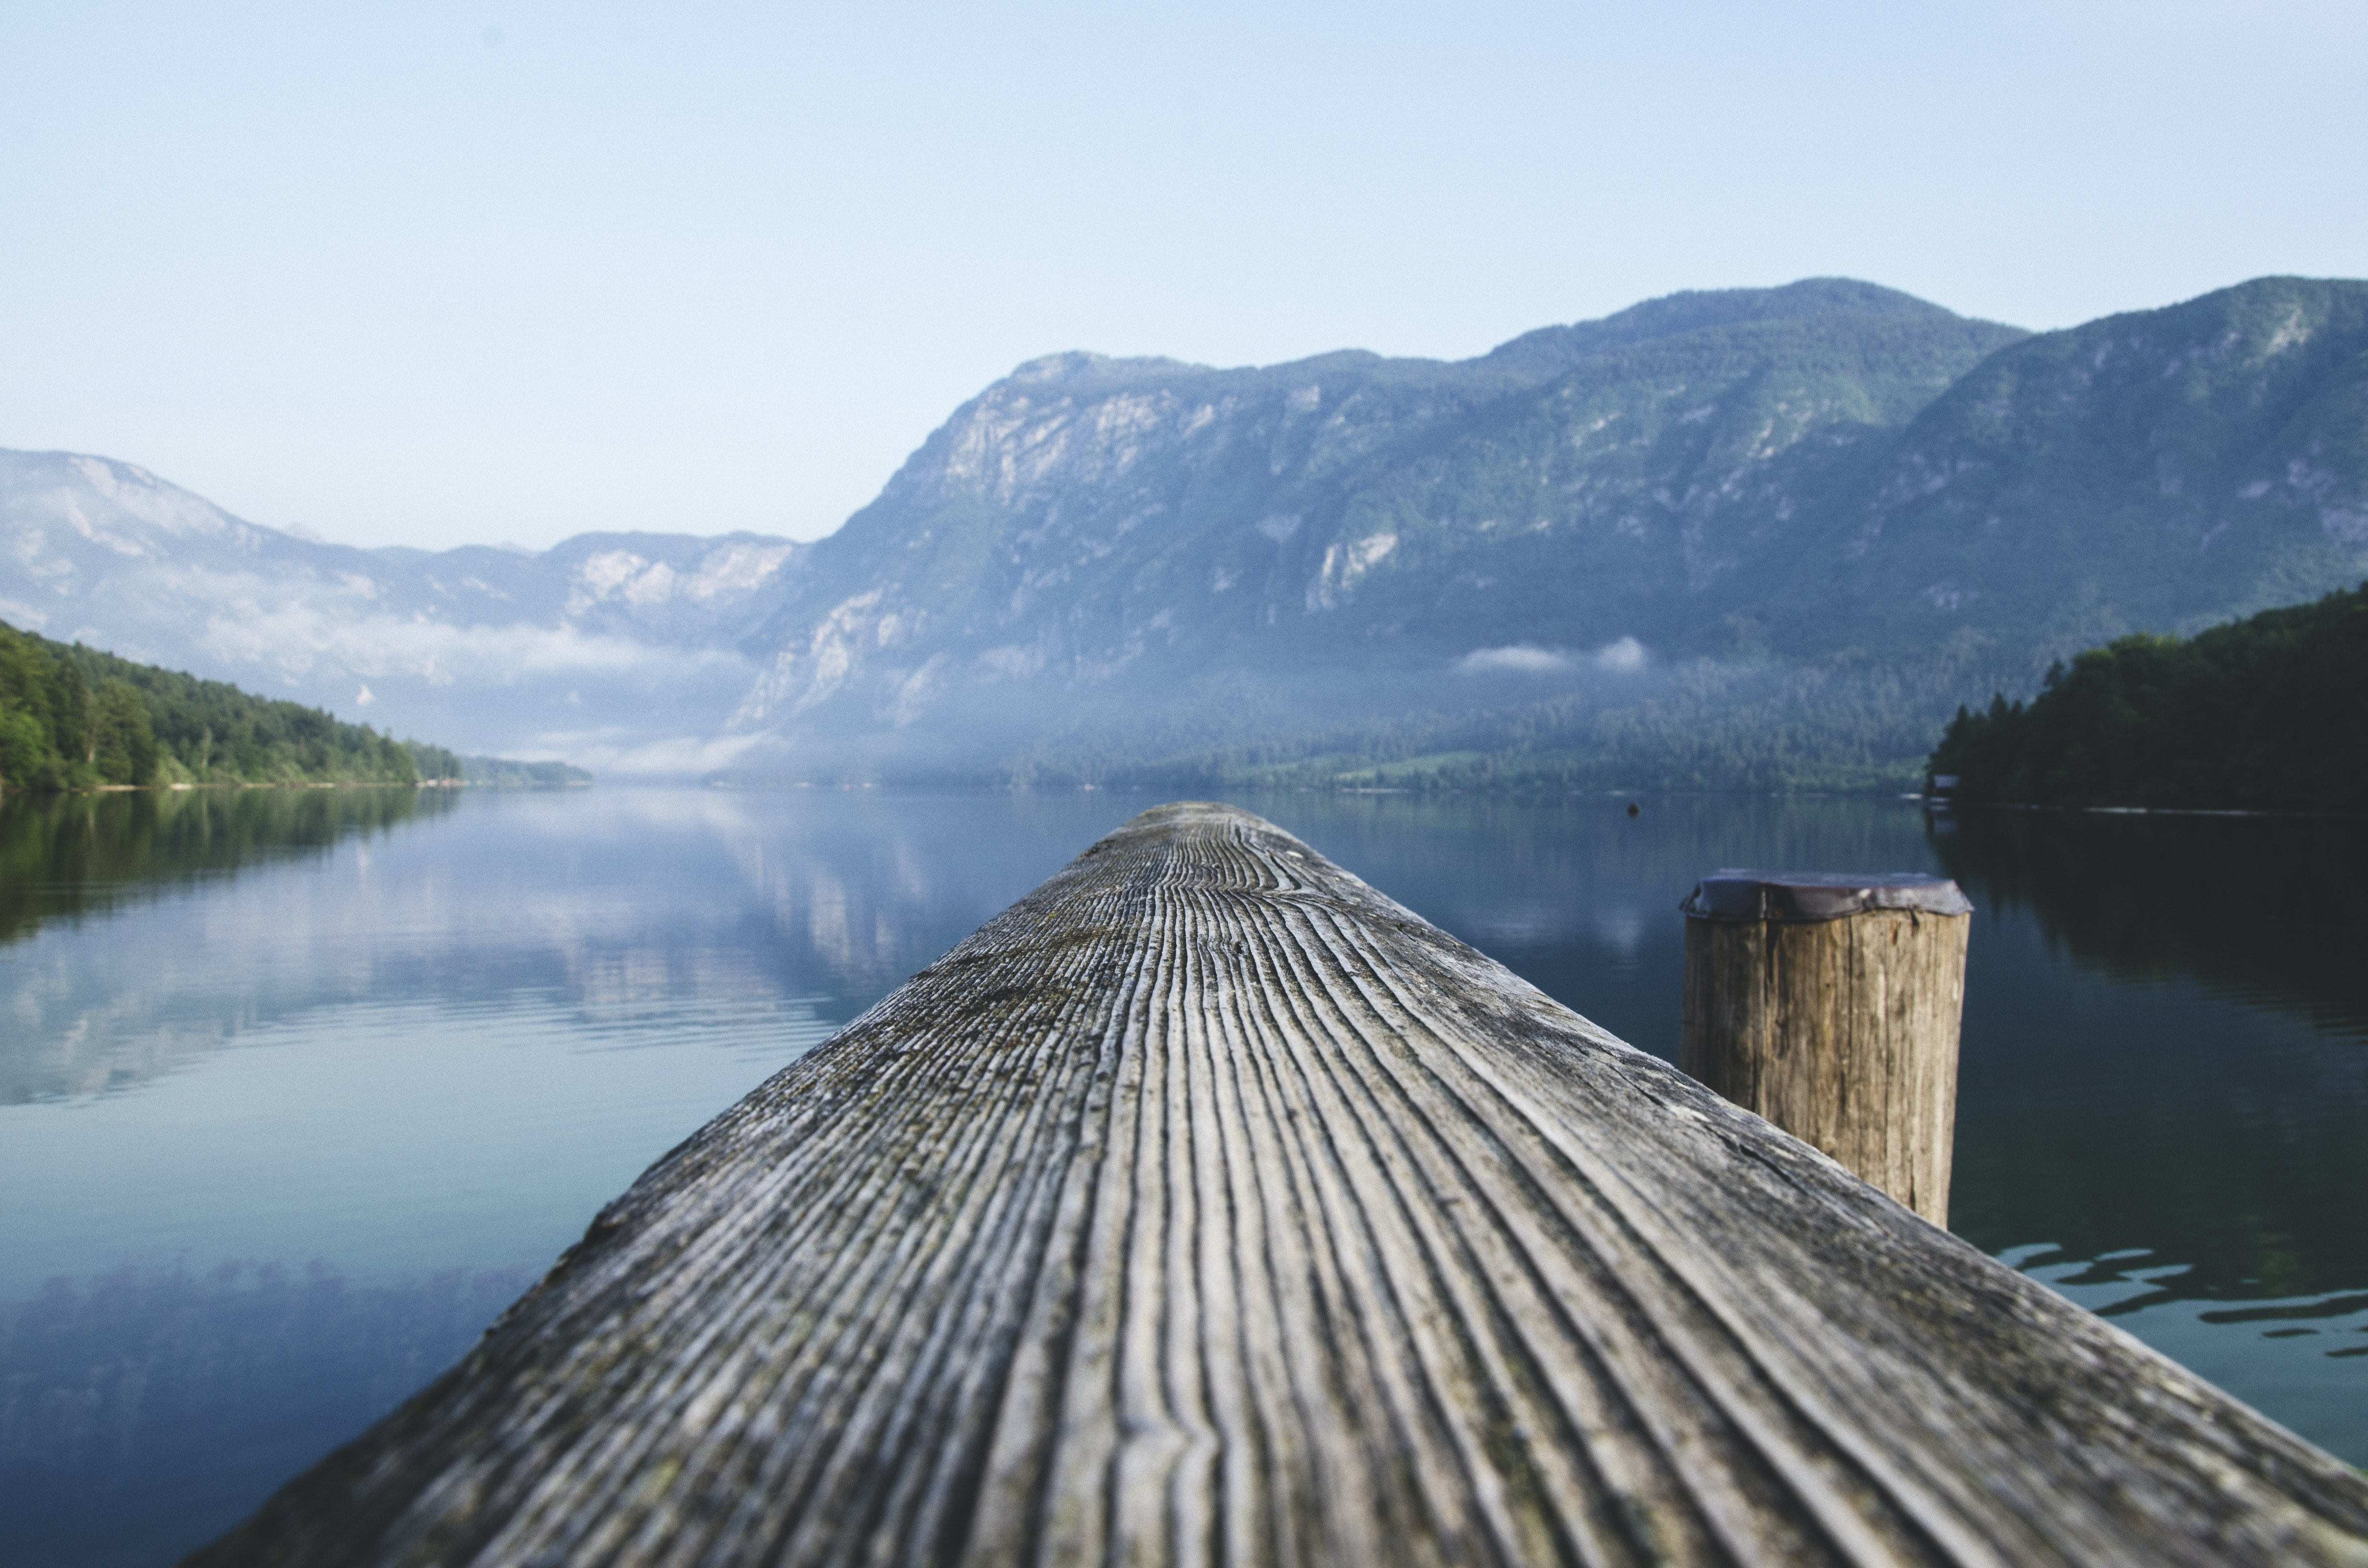 gray wood beam near body of water surrounded by mountain ranges during daytime